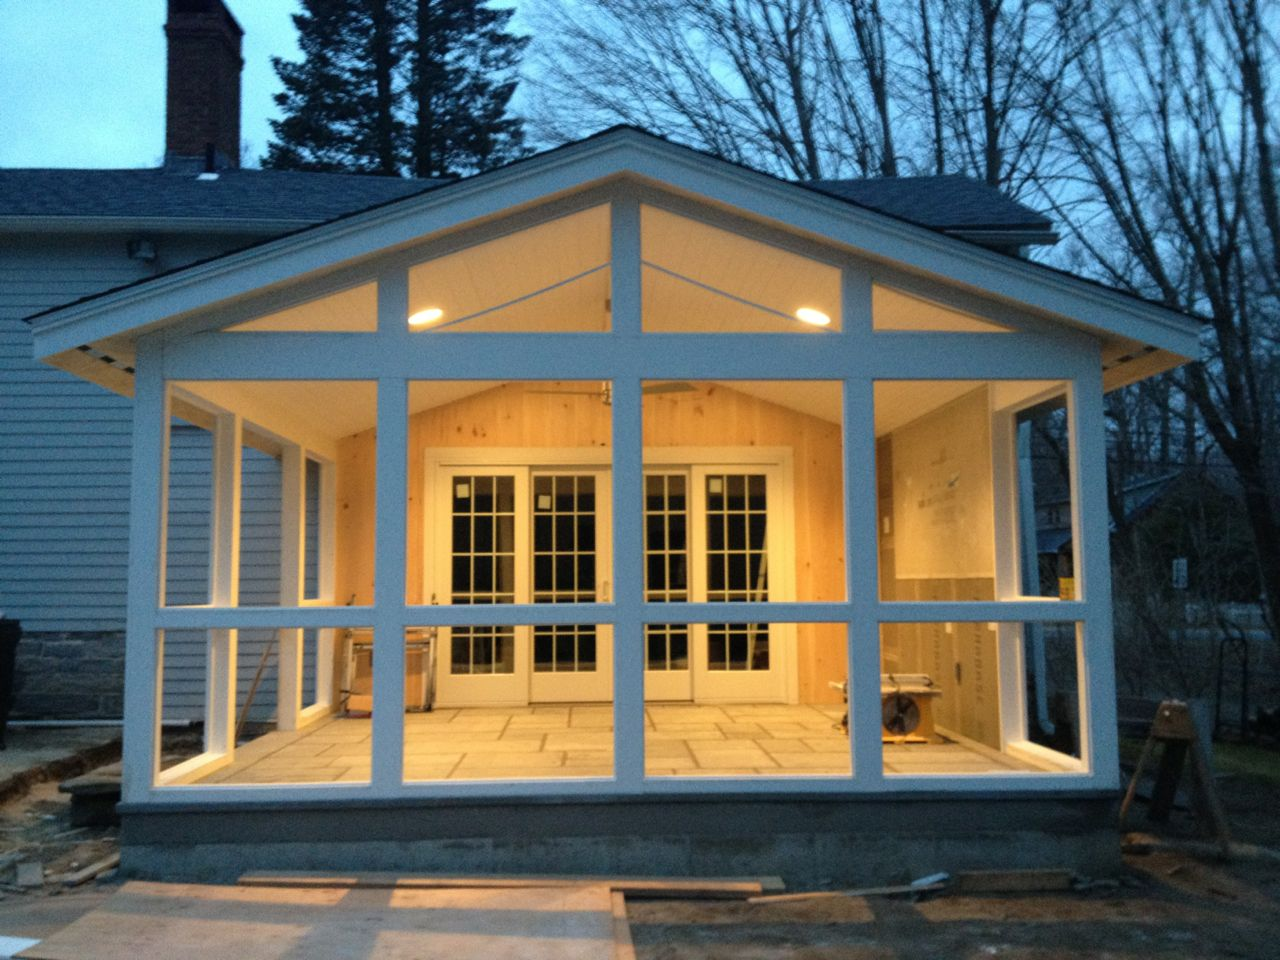 Old Carriage House Plans as well Small Barn Style Home Plans besides Beach Carriage House Plans also New England Barn Style House Plans further . on old barn carriage house